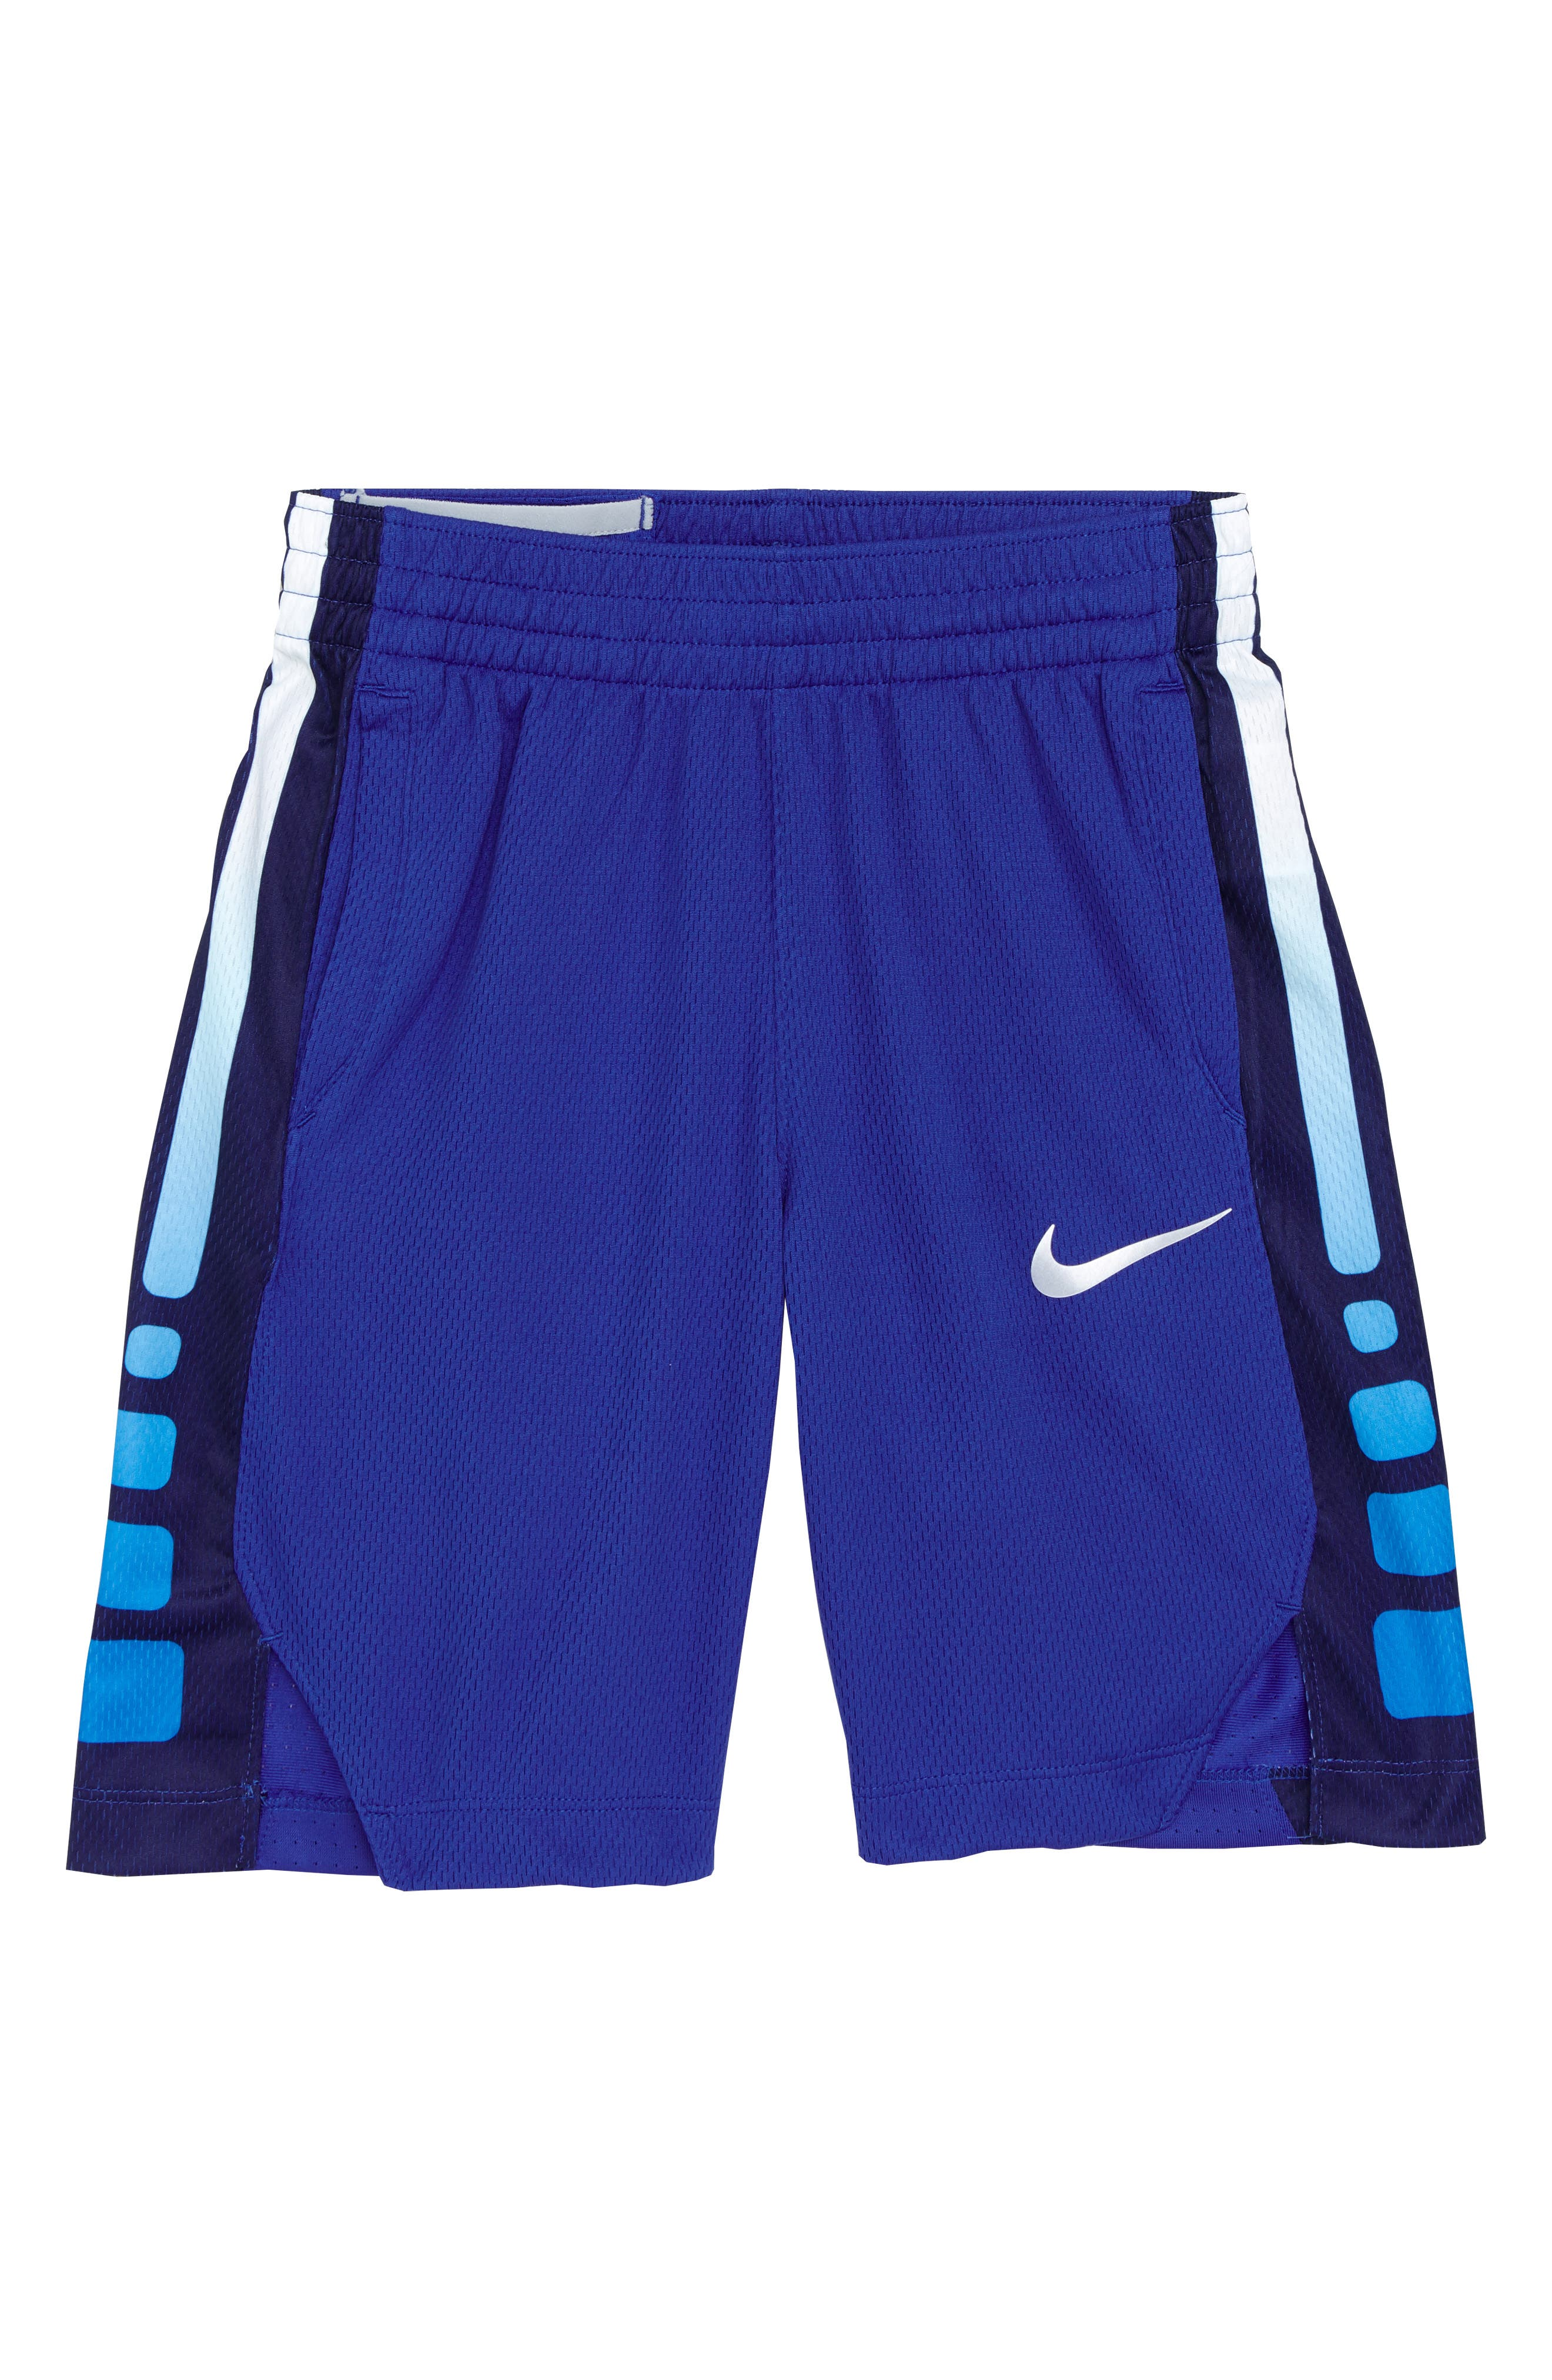 Dry Elite Basketball Shorts,                             Main thumbnail 1, color,                             Game Royal/ White